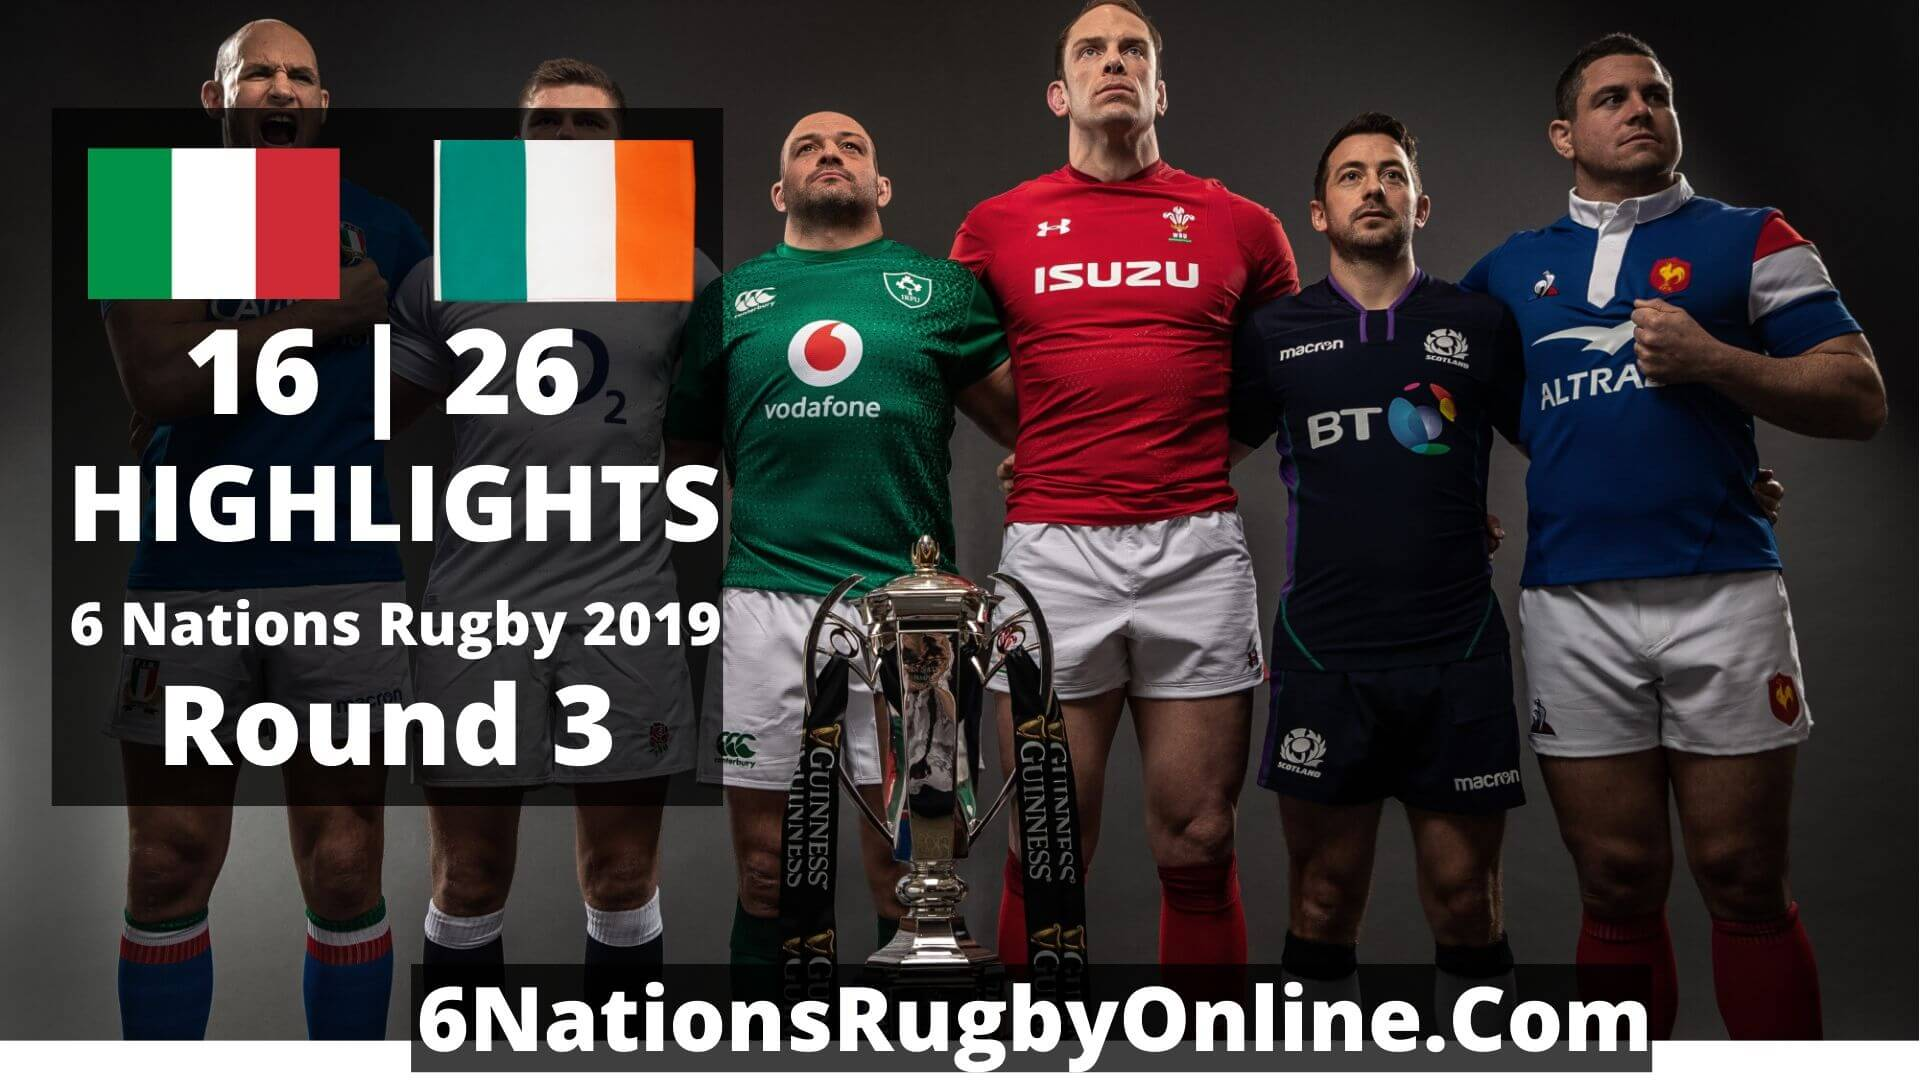 Italy Vs Ireland Highlights 2019 Six Nations Rugby Round 3